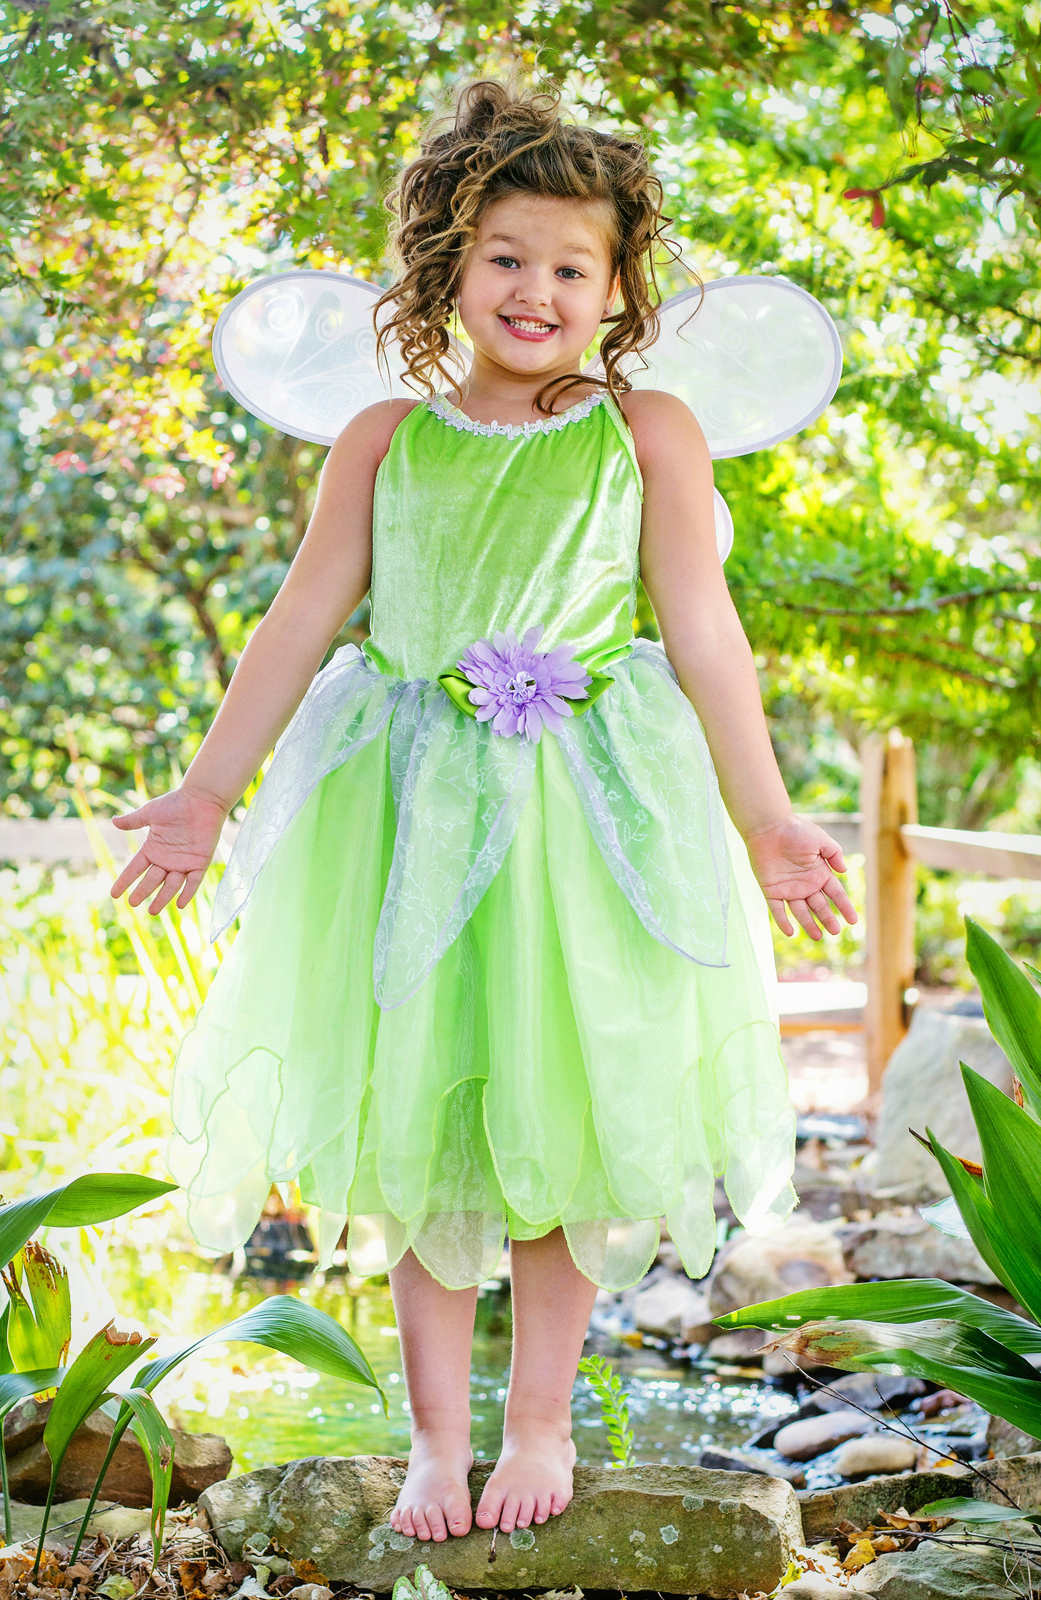 Wings available separately  sc 1 st  Little Dress Up Shop & DELUXE Tinkerbell Fairy Dress Up Costume | Girls Tinkerbelle Dress